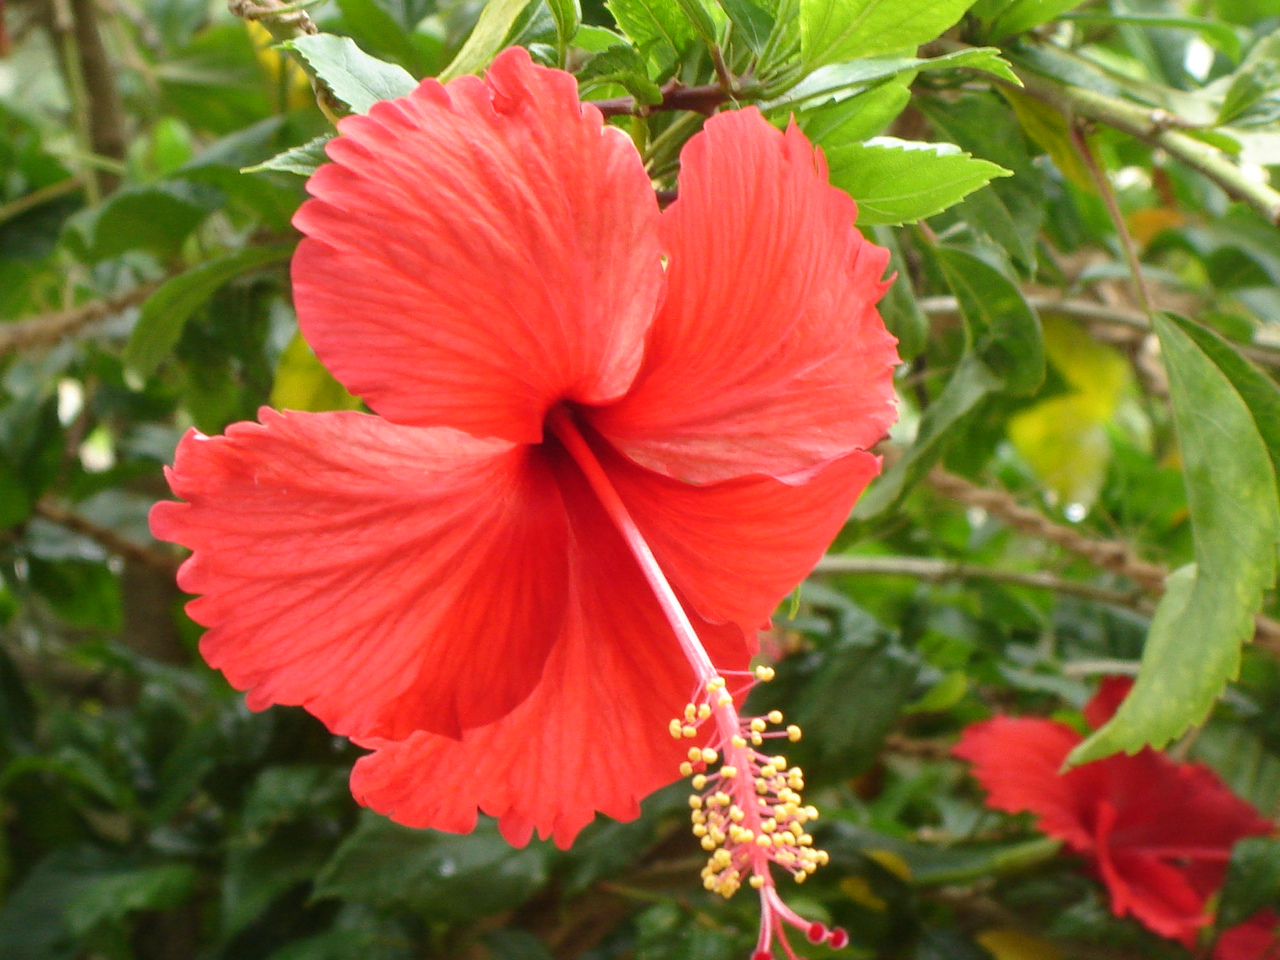 Filered hibiscus in chennai during springg wikimedia commons filered hibiscus in chennai during springg izmirmasajfo